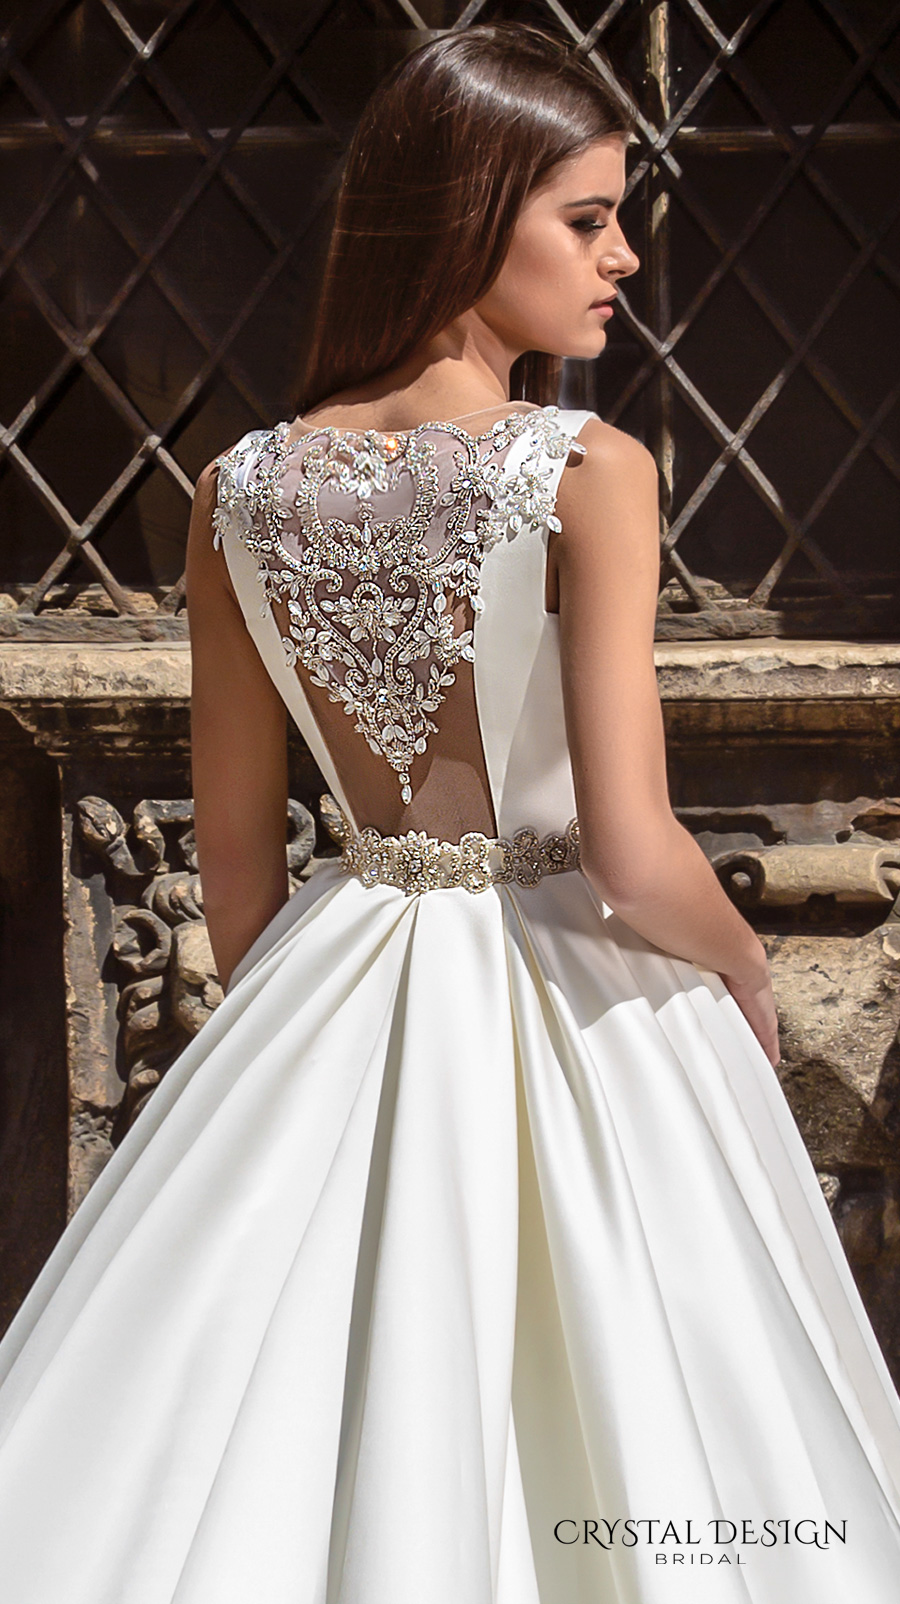 Embellished belt for wedding dress